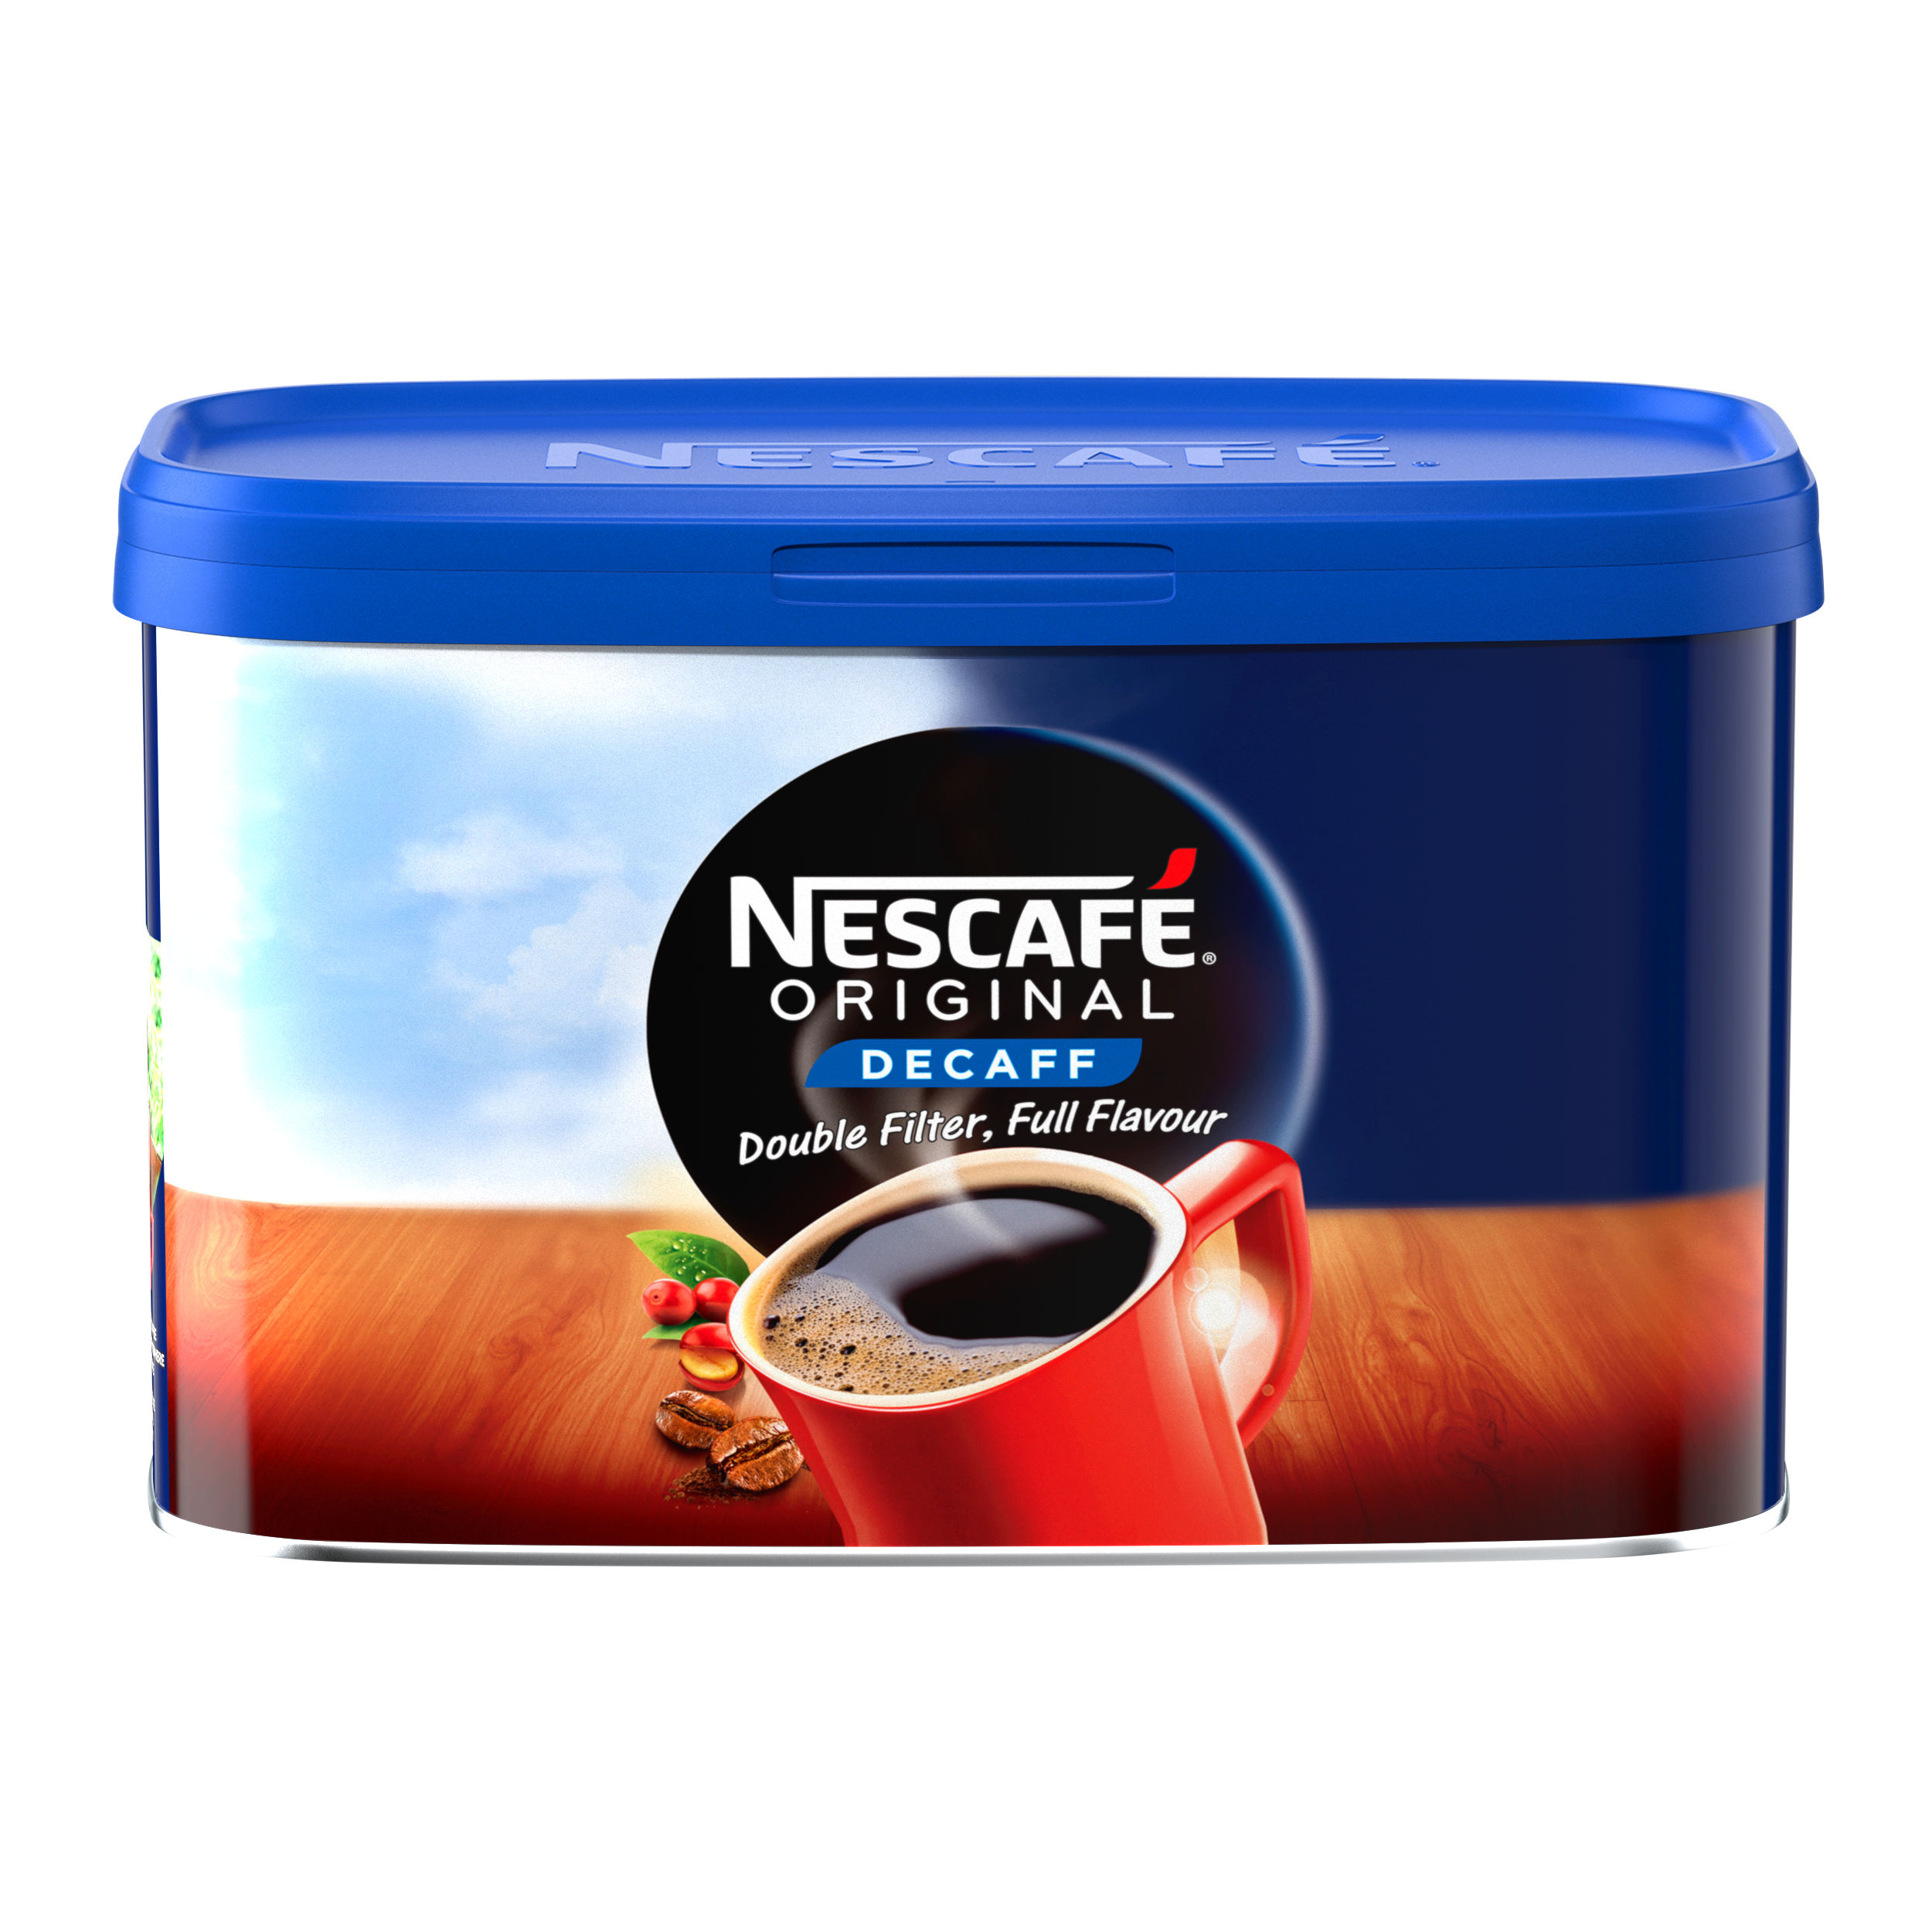 Nescafe Original Decaffeinated Coffee 500g Tin Ref 12315569